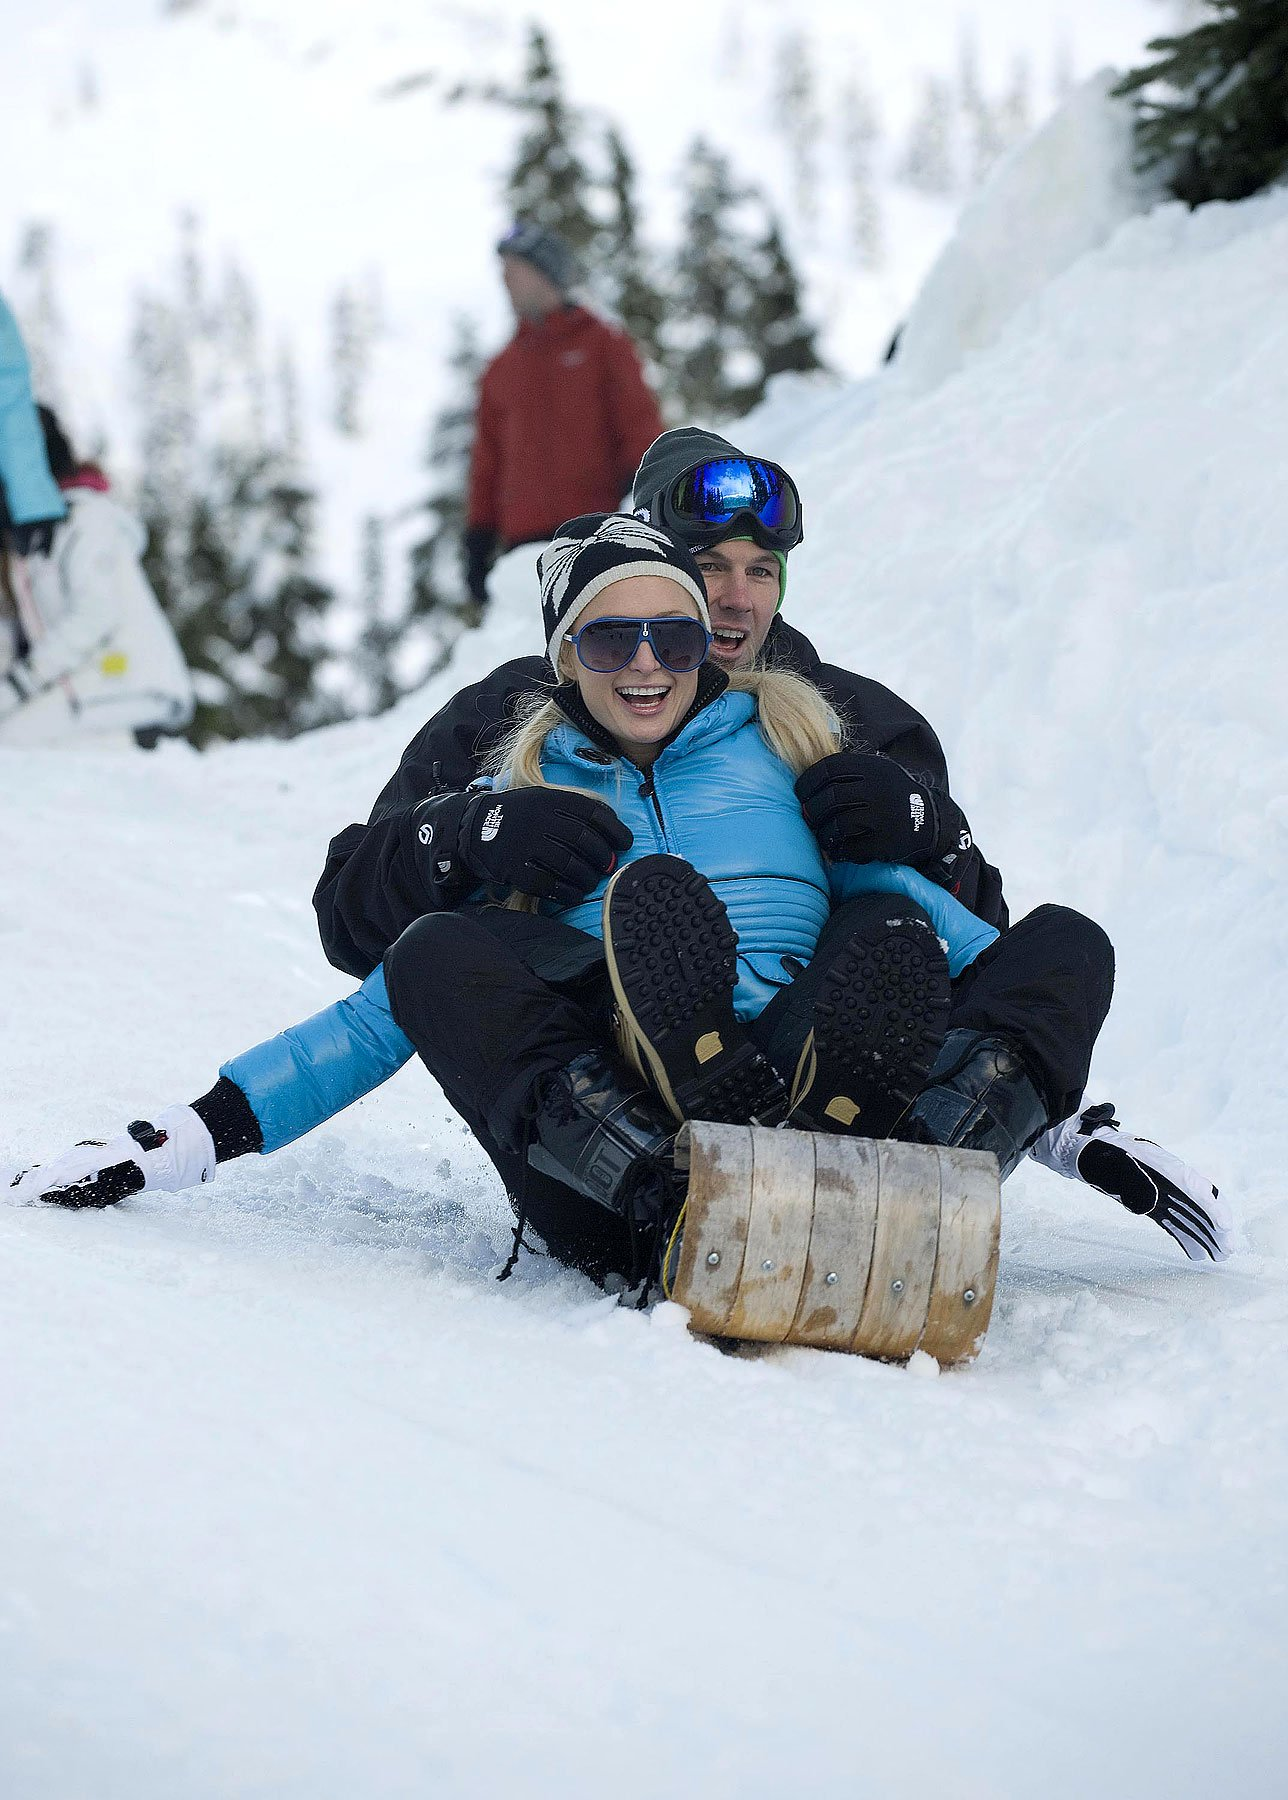 Paris Hilton Manages To Keep Her Clothes On In Harsh Canadian Climate (PHOTOS)